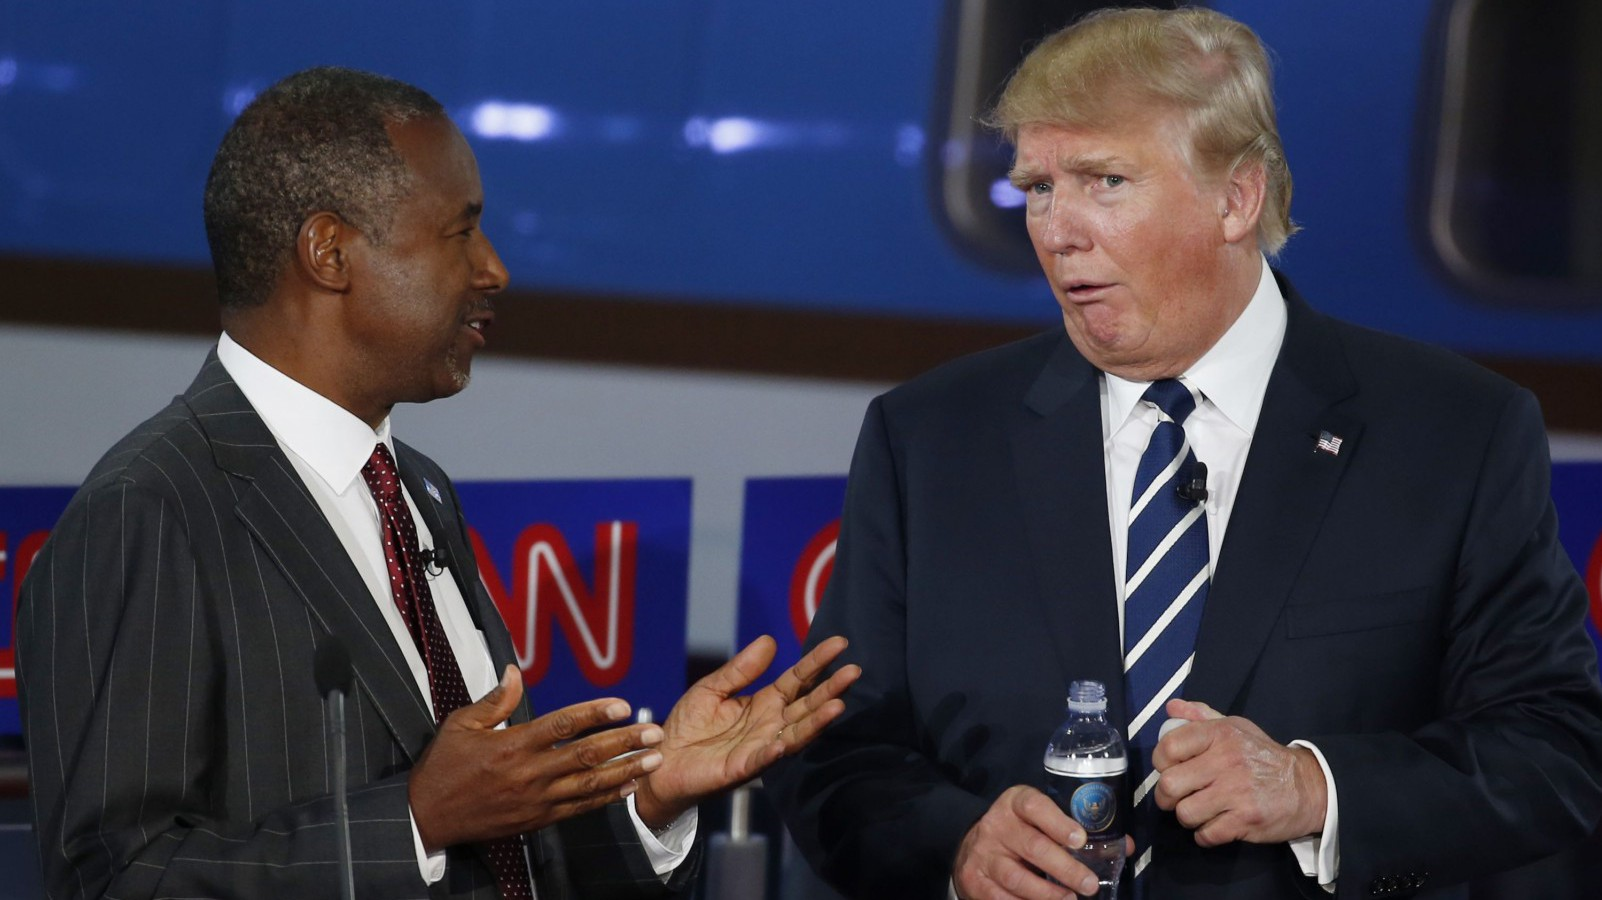 Republican U.S. presidential candidates Dr. Ben Carson (L) and businessman Donald Trump talk during a commercial break at the second official Republican presidential candidates debate of the 2016 U.S. presidential campaign at the Ronald Reagan Presidential Library in Simi Valley, California, United States, September 16, 2015. REUTERS/Lucy Nicholson - RTS1HUU